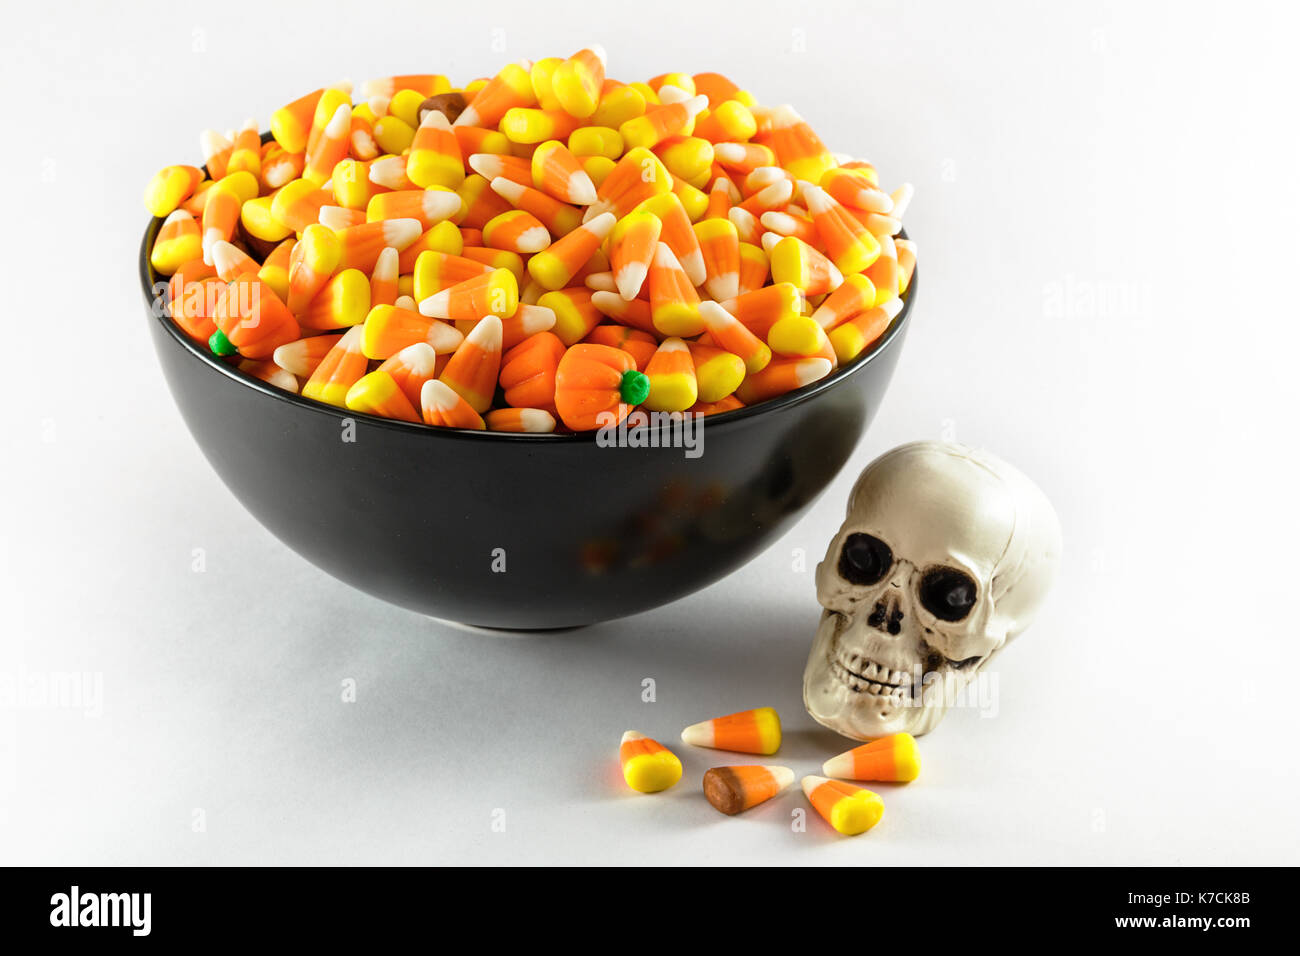 A black bowl over filled with Candy Corn taken on a white background.  A plastic toy skull is also shown in the photo - Stock Image